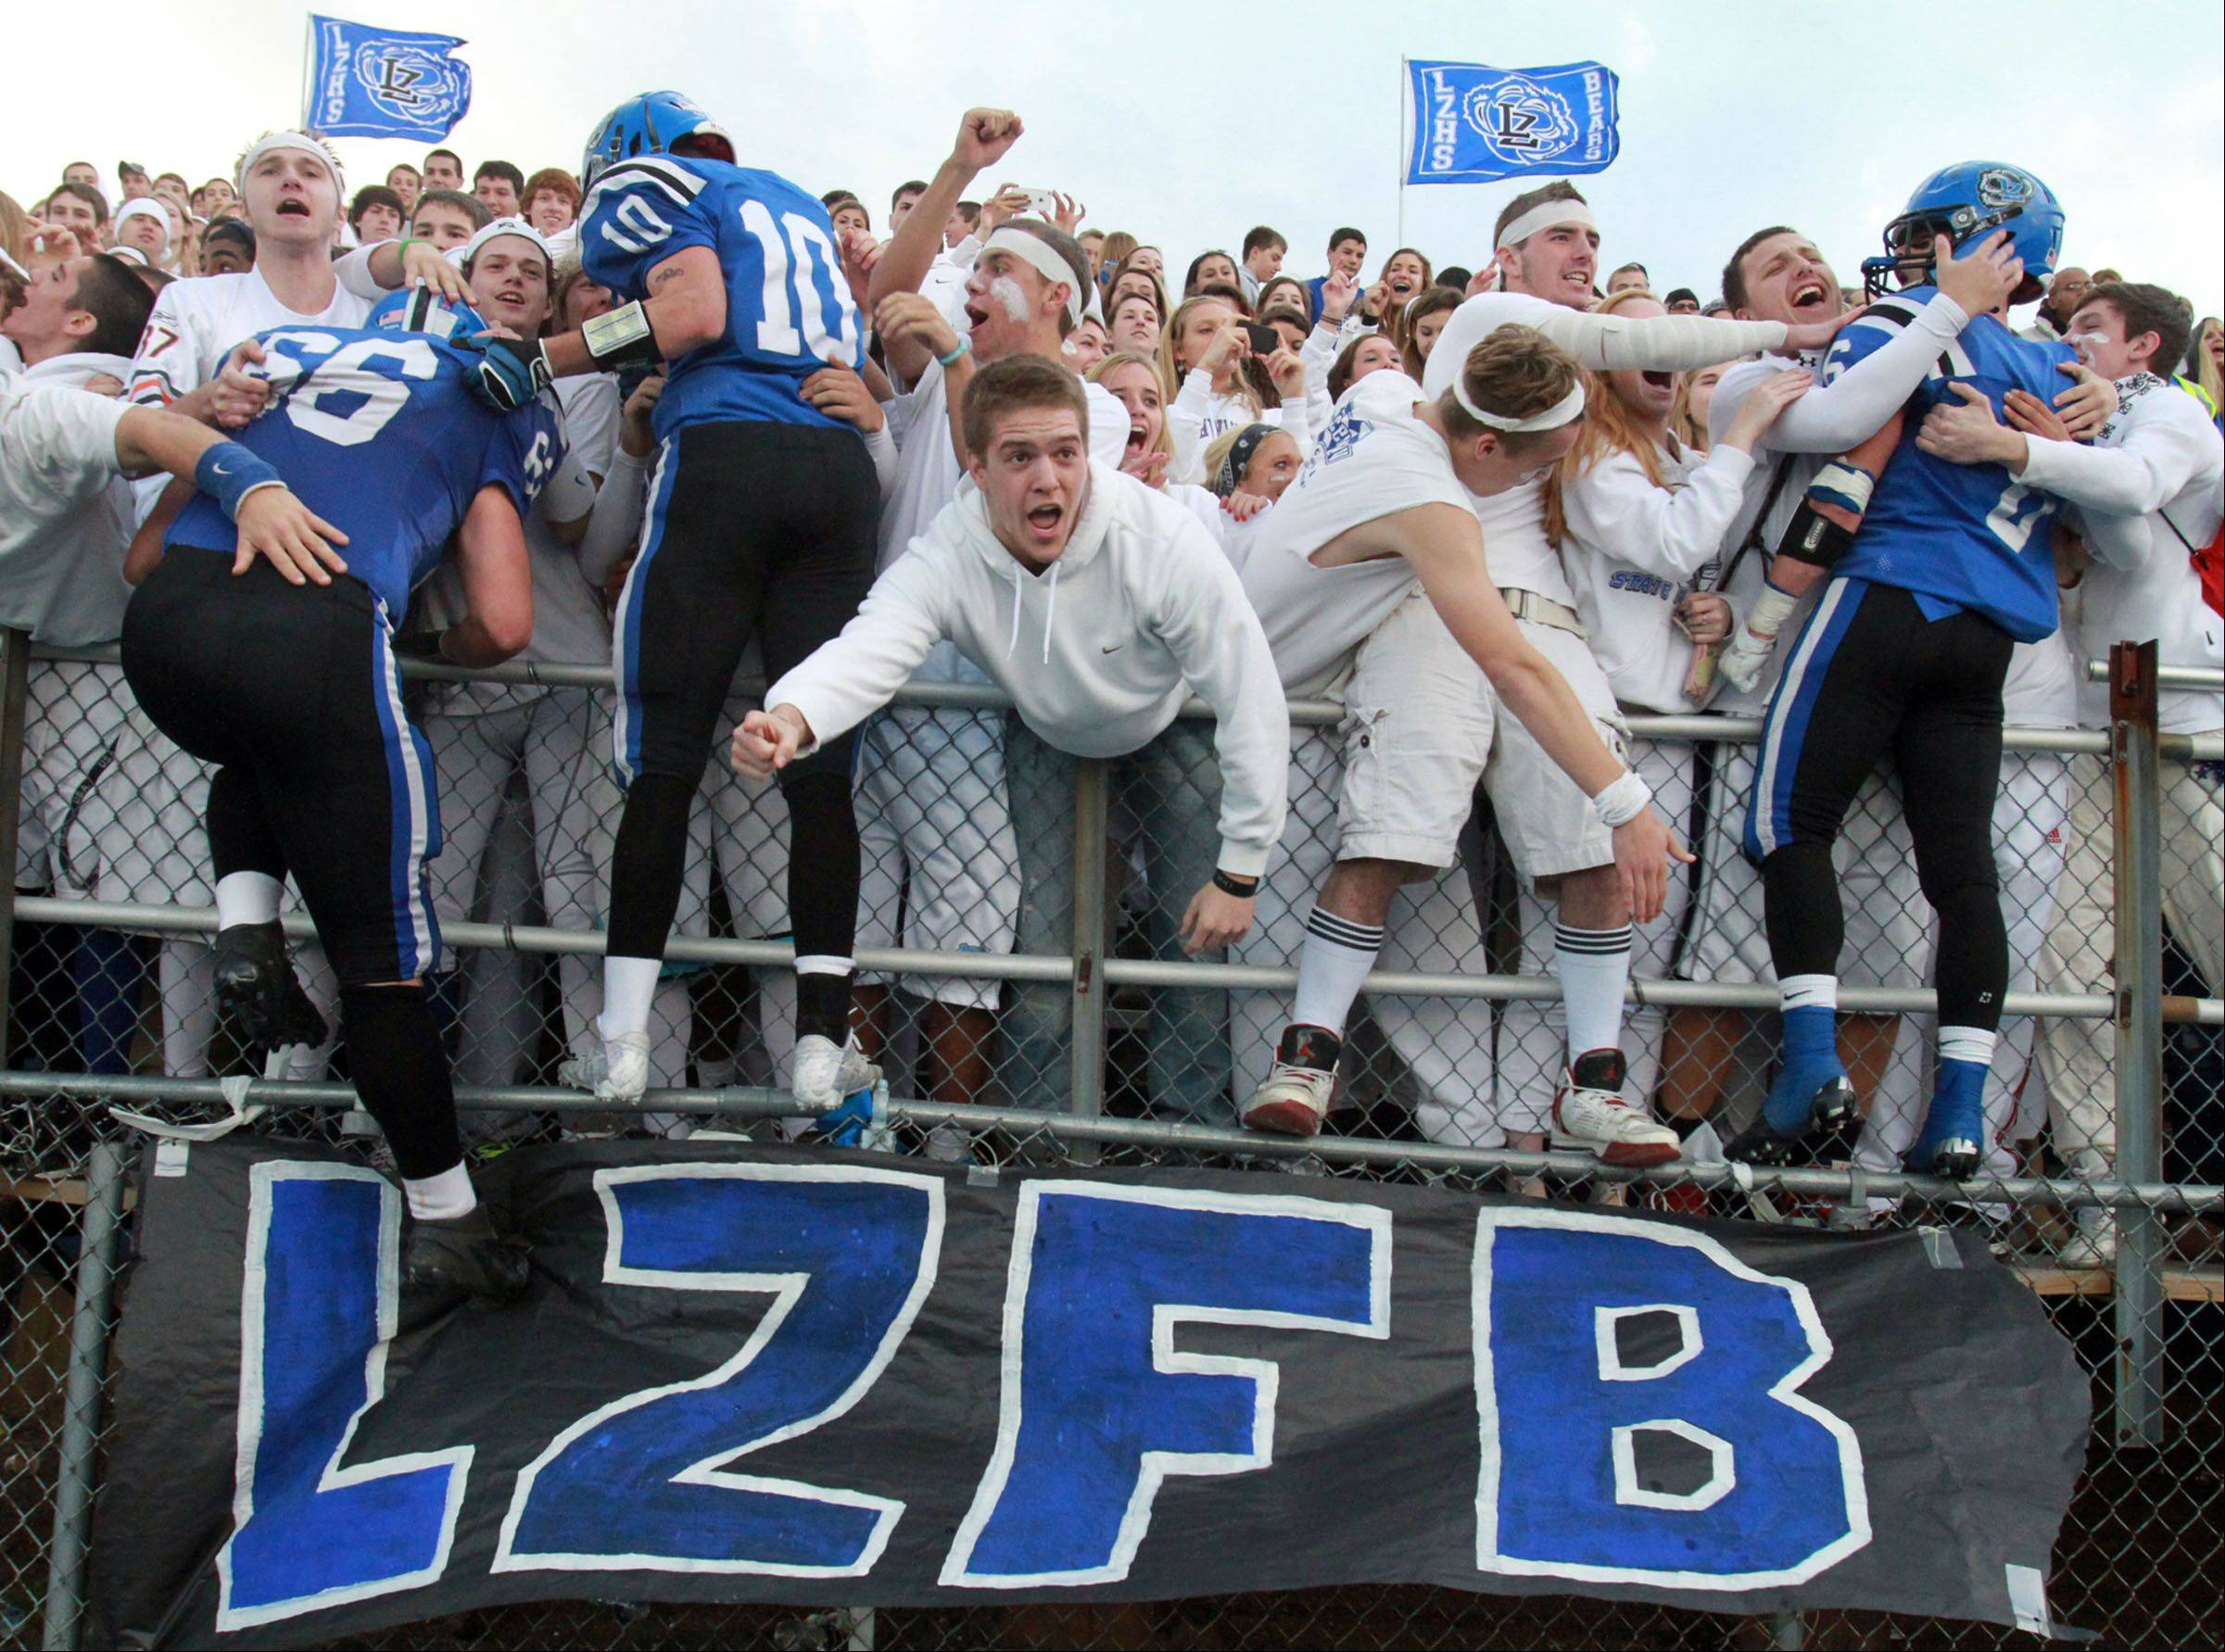 Lake Zurich players leap into the student fan section after winning over Rockford Boylan in Class 7A state quarterfinal game at Lake Zurich on Saturday.